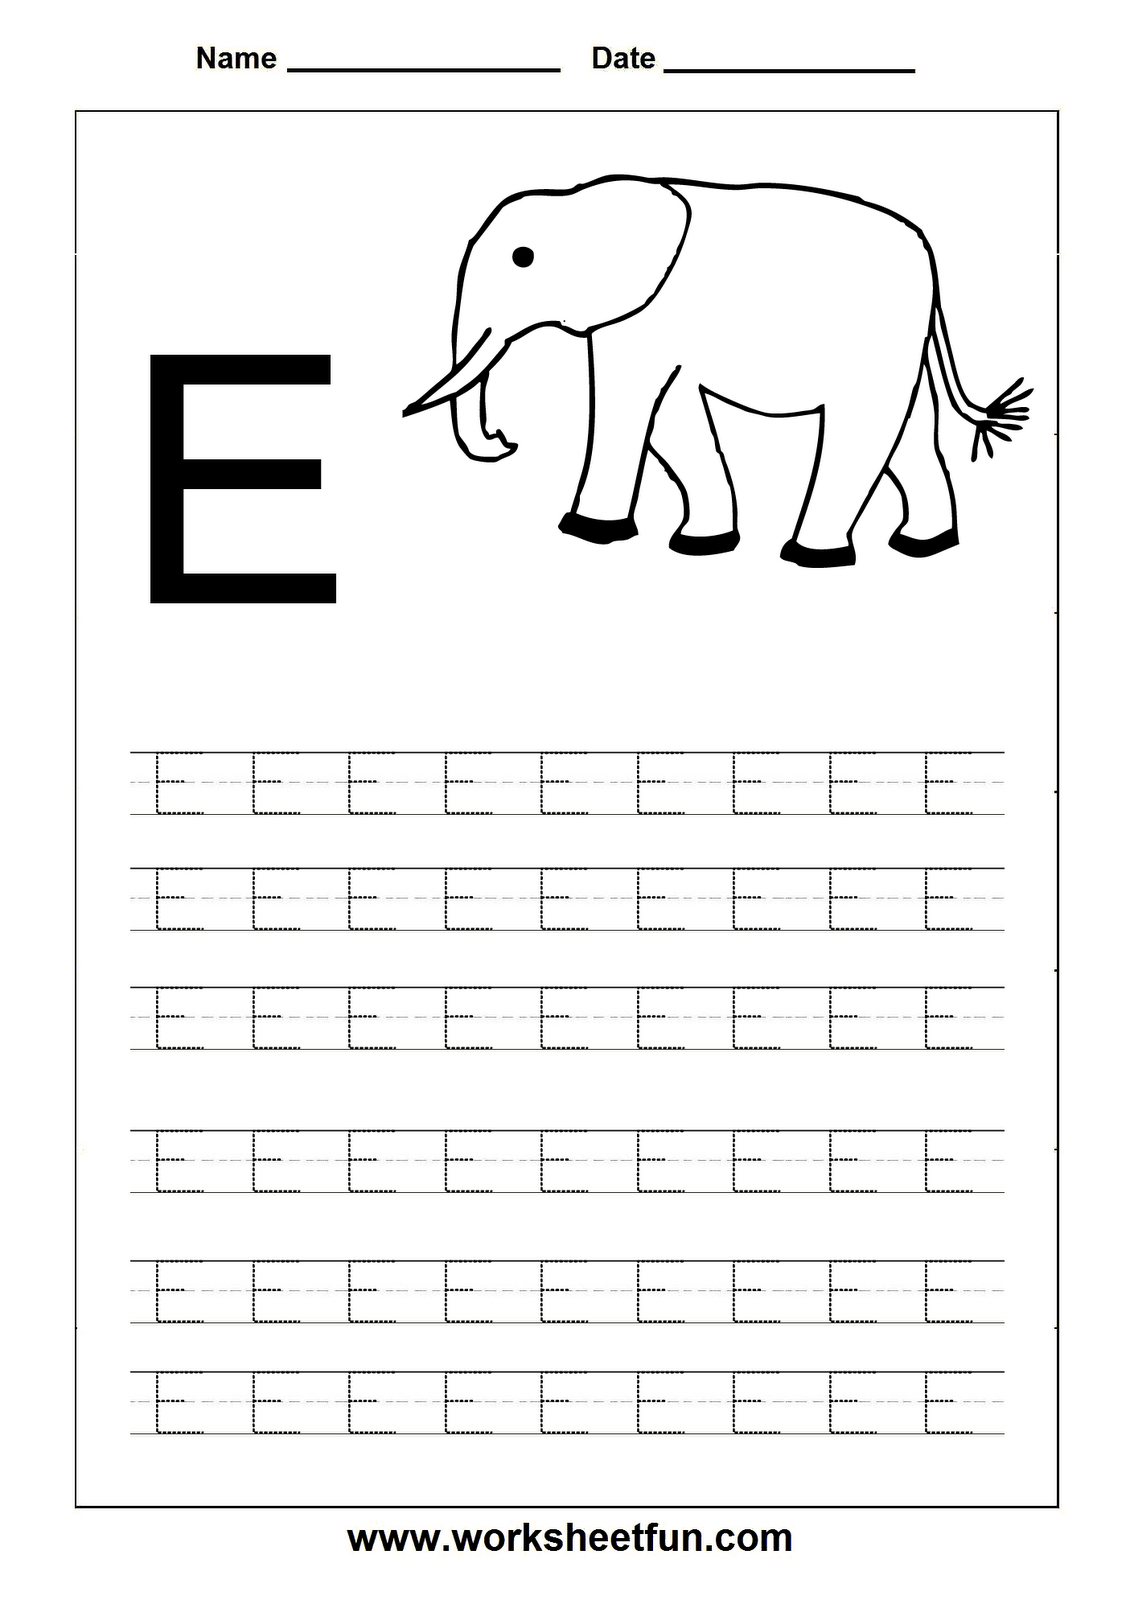 Free Printable Worksheets - Contents | Letter E Worksheets for Letter E Worksheets Tracing